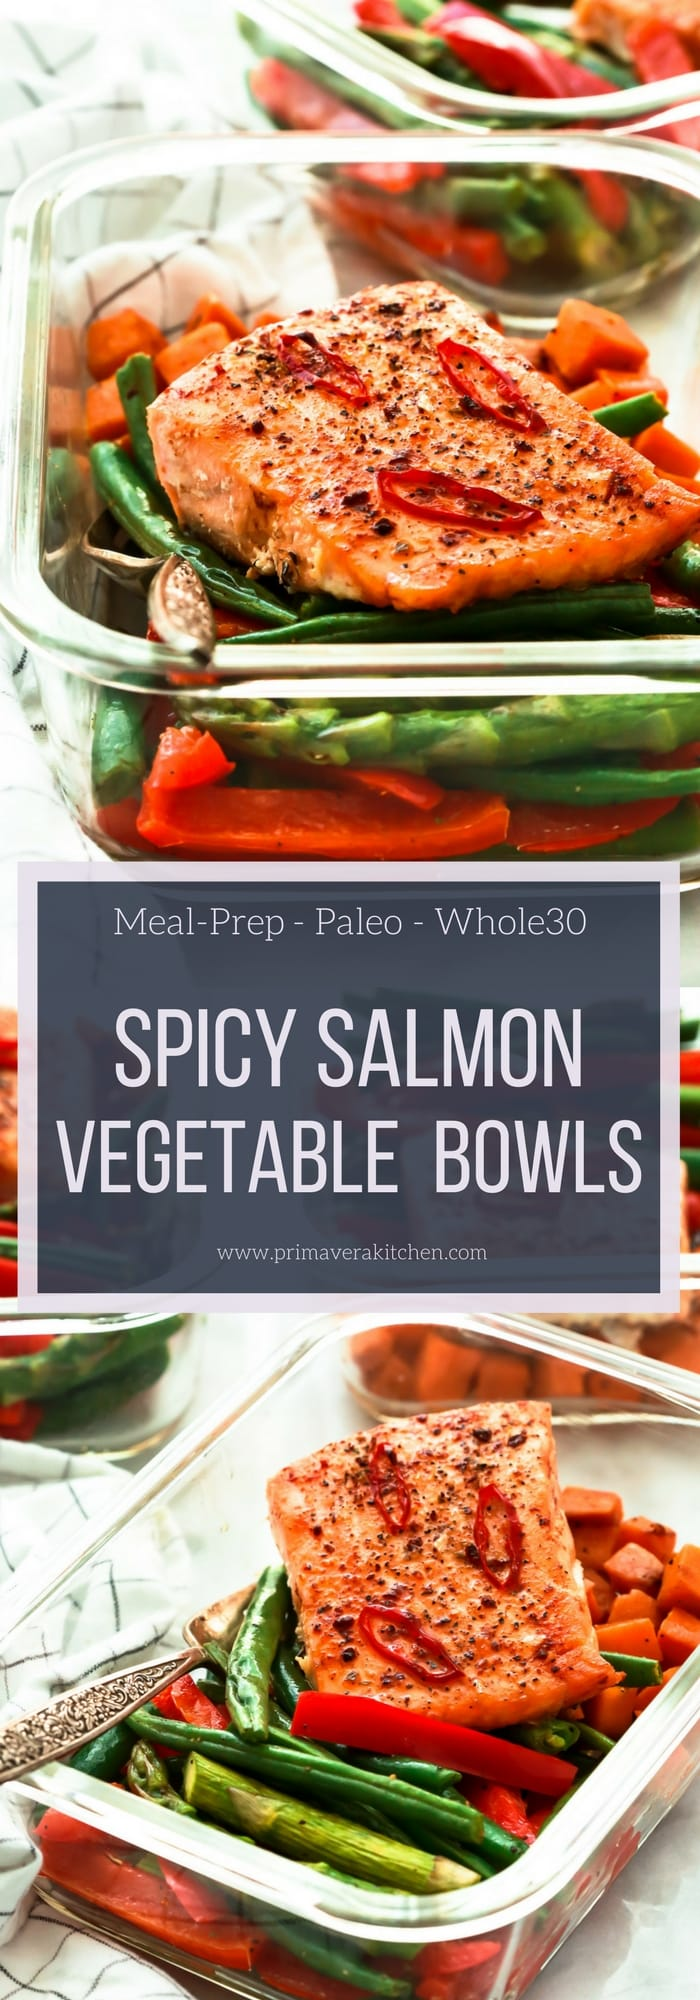 Spicy Salmon Vegetable Meal-Prep Bowls